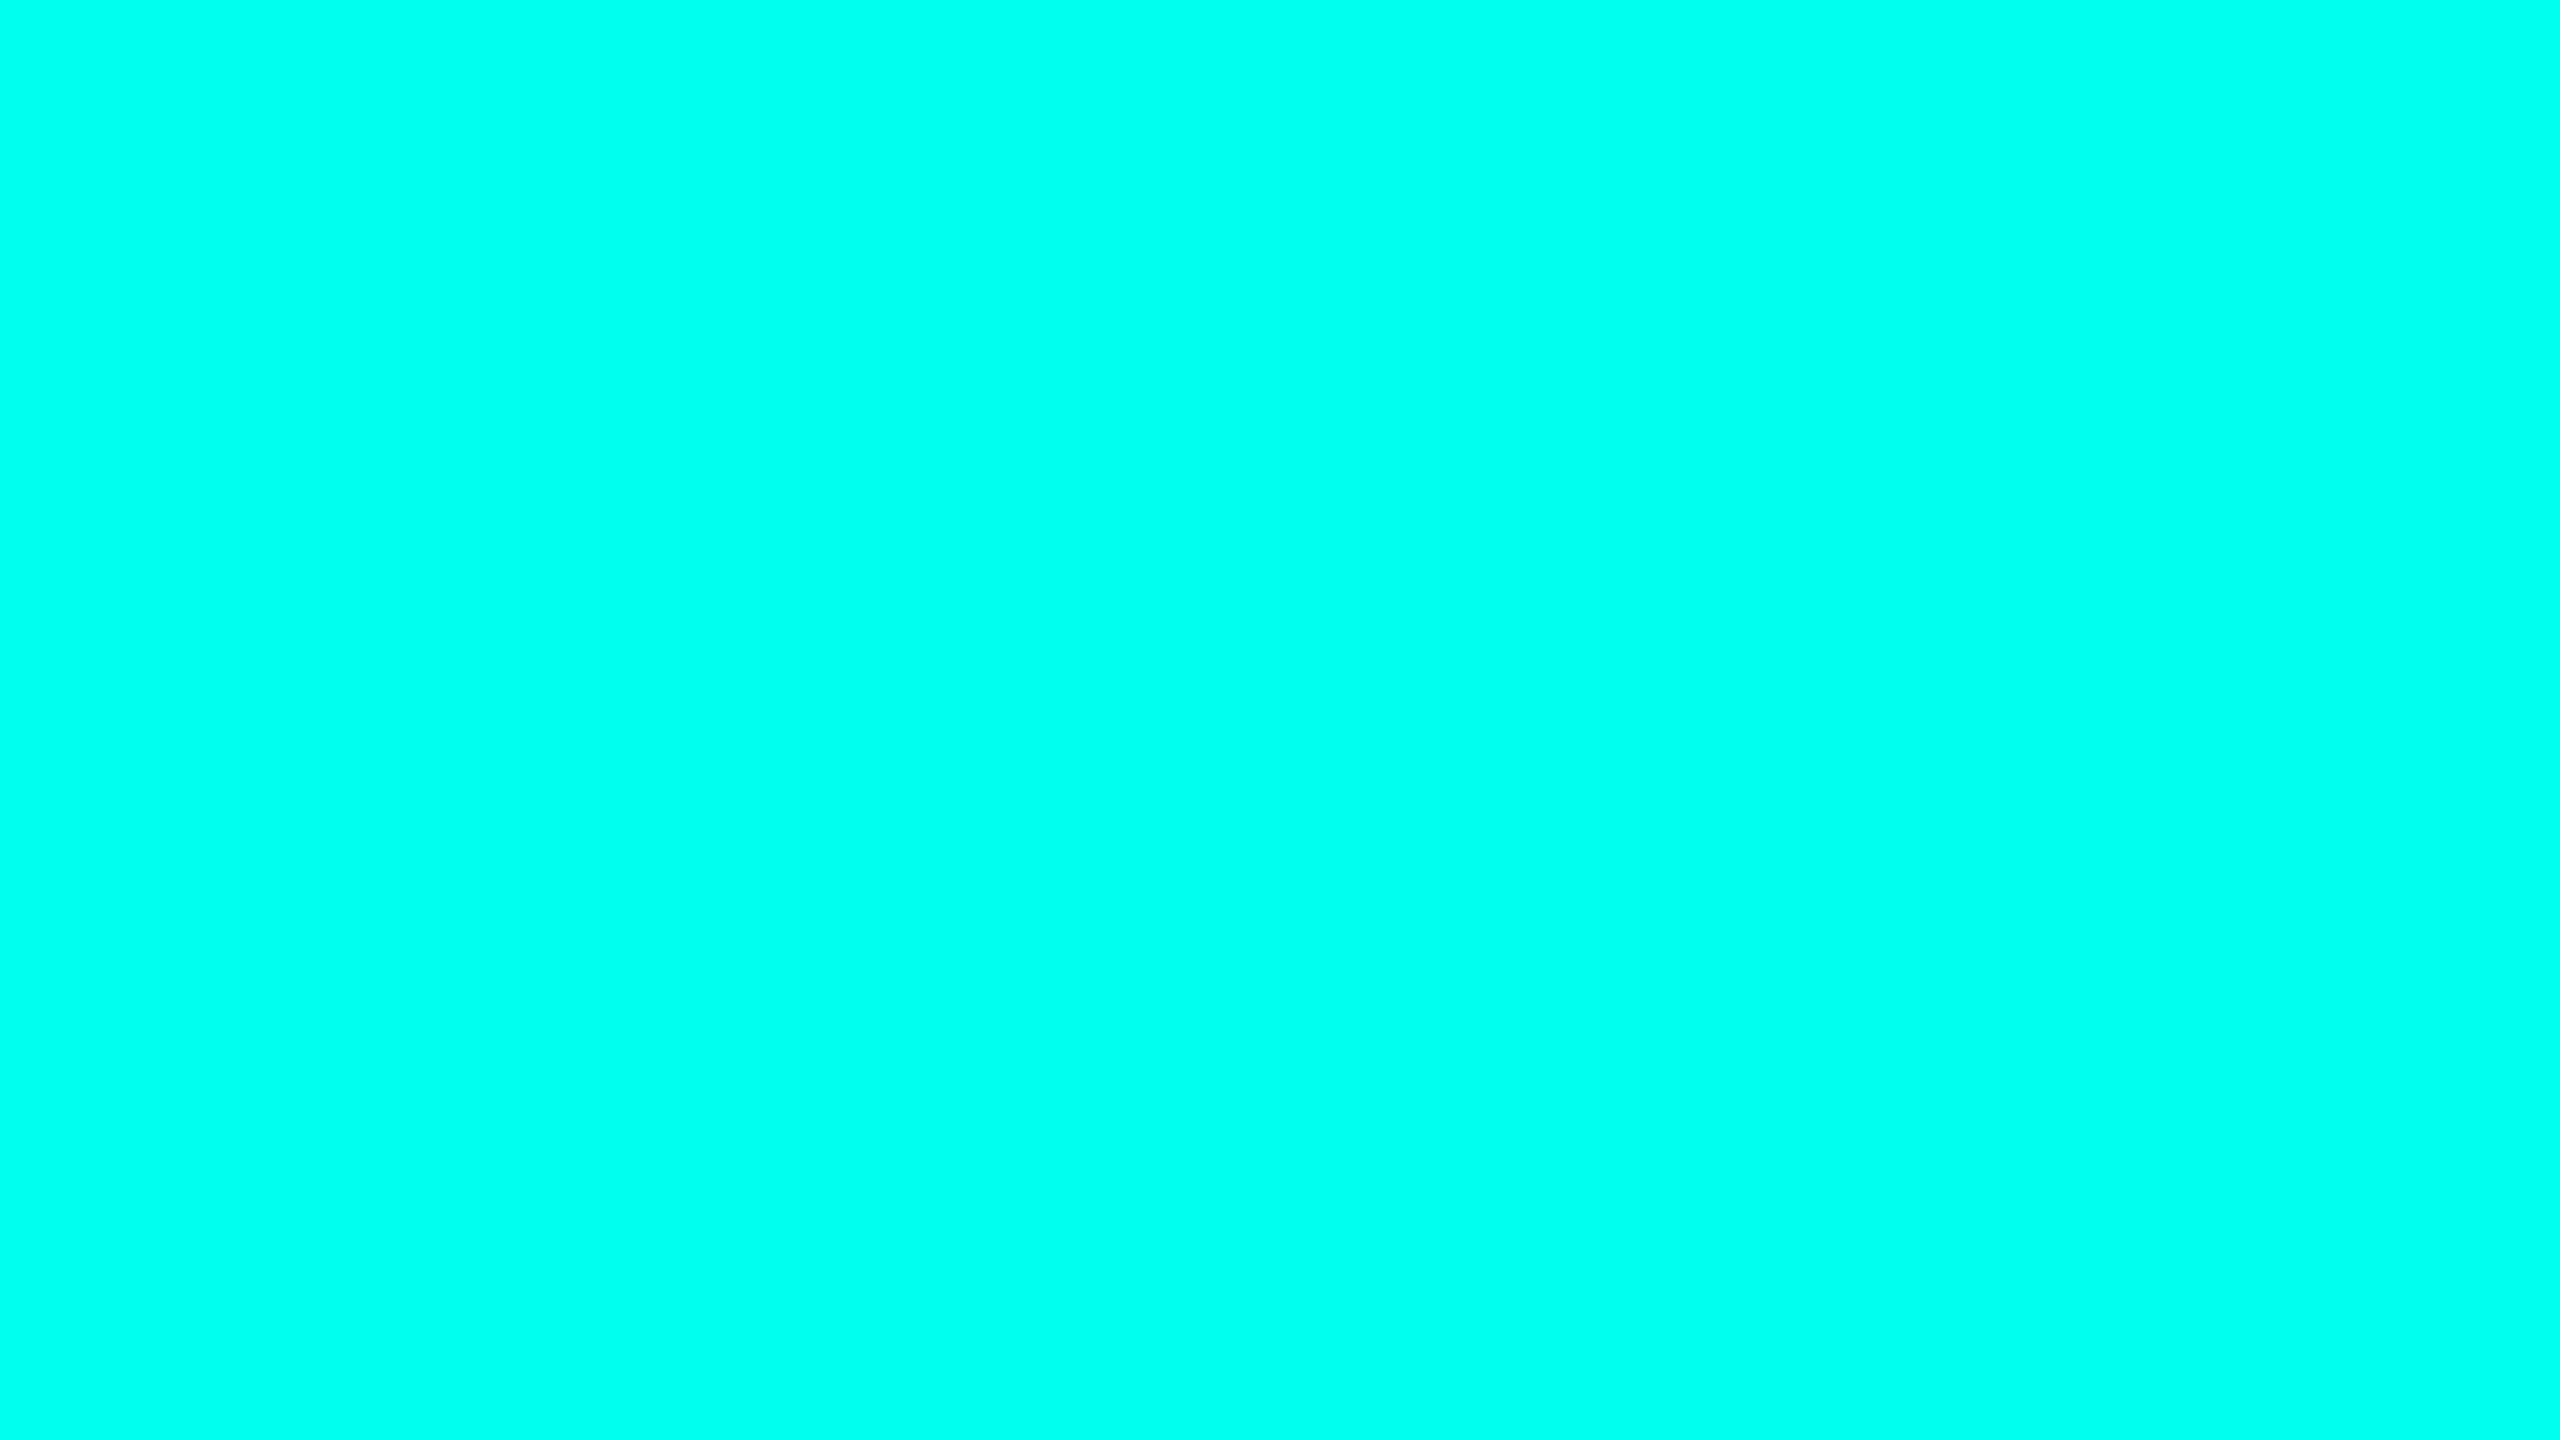 2560x1440 Turquoise Blue Solid Color Background